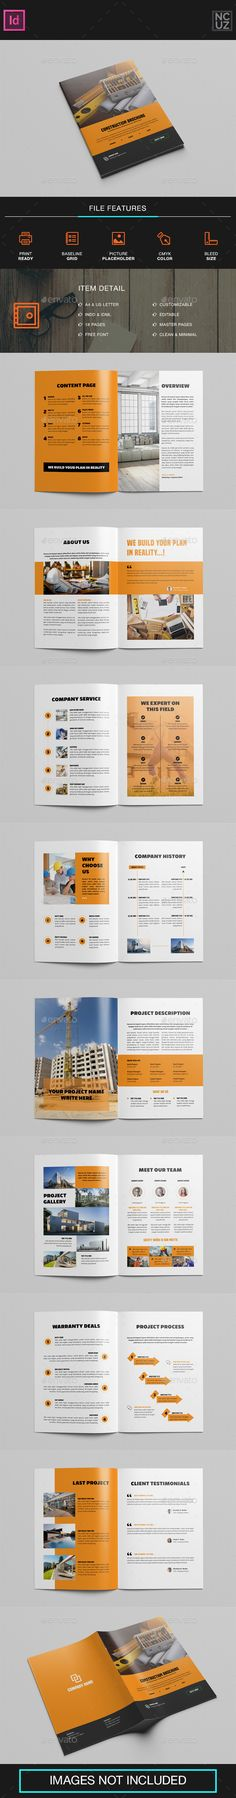 Brochure Construction Company — InDesign INDD #building #construction • Download ➝ https://graphicriver.net/item/brochure-construction-company/19521929?ref=pxcr